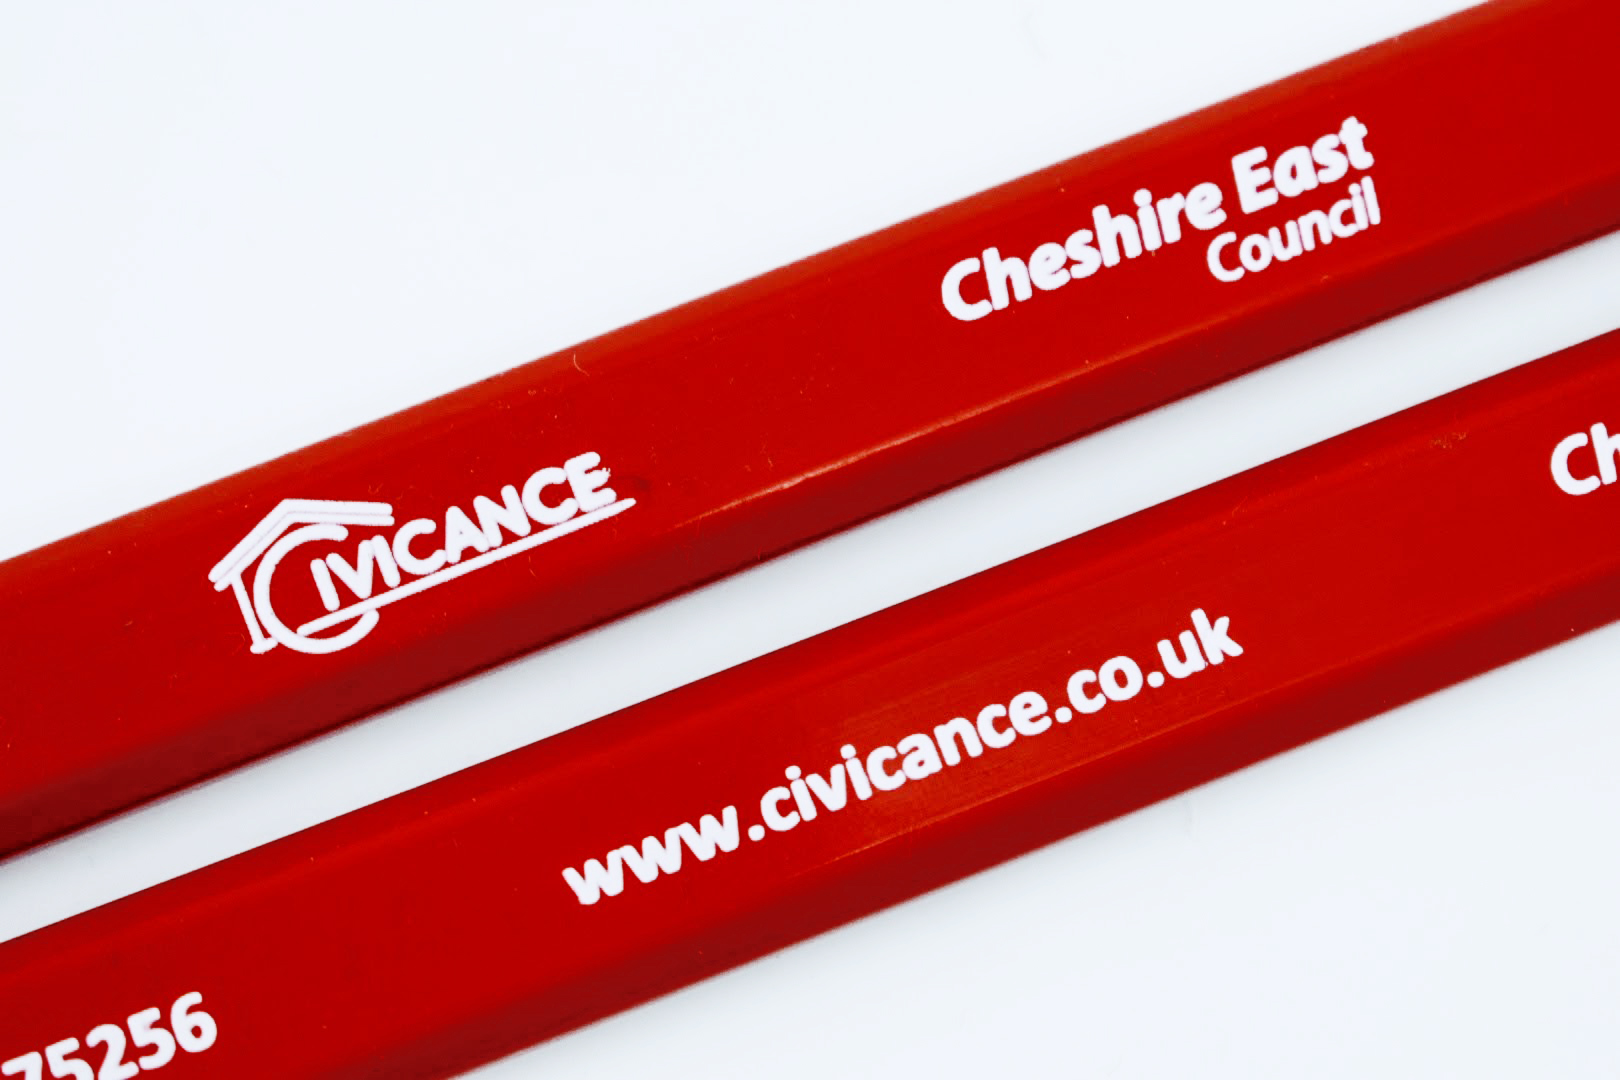 Ordering your Promotional Promotional Carpenters Pencils is Fast and Simple. Make a Start by Contacting us Now or Call us on 0330 043 18 08.